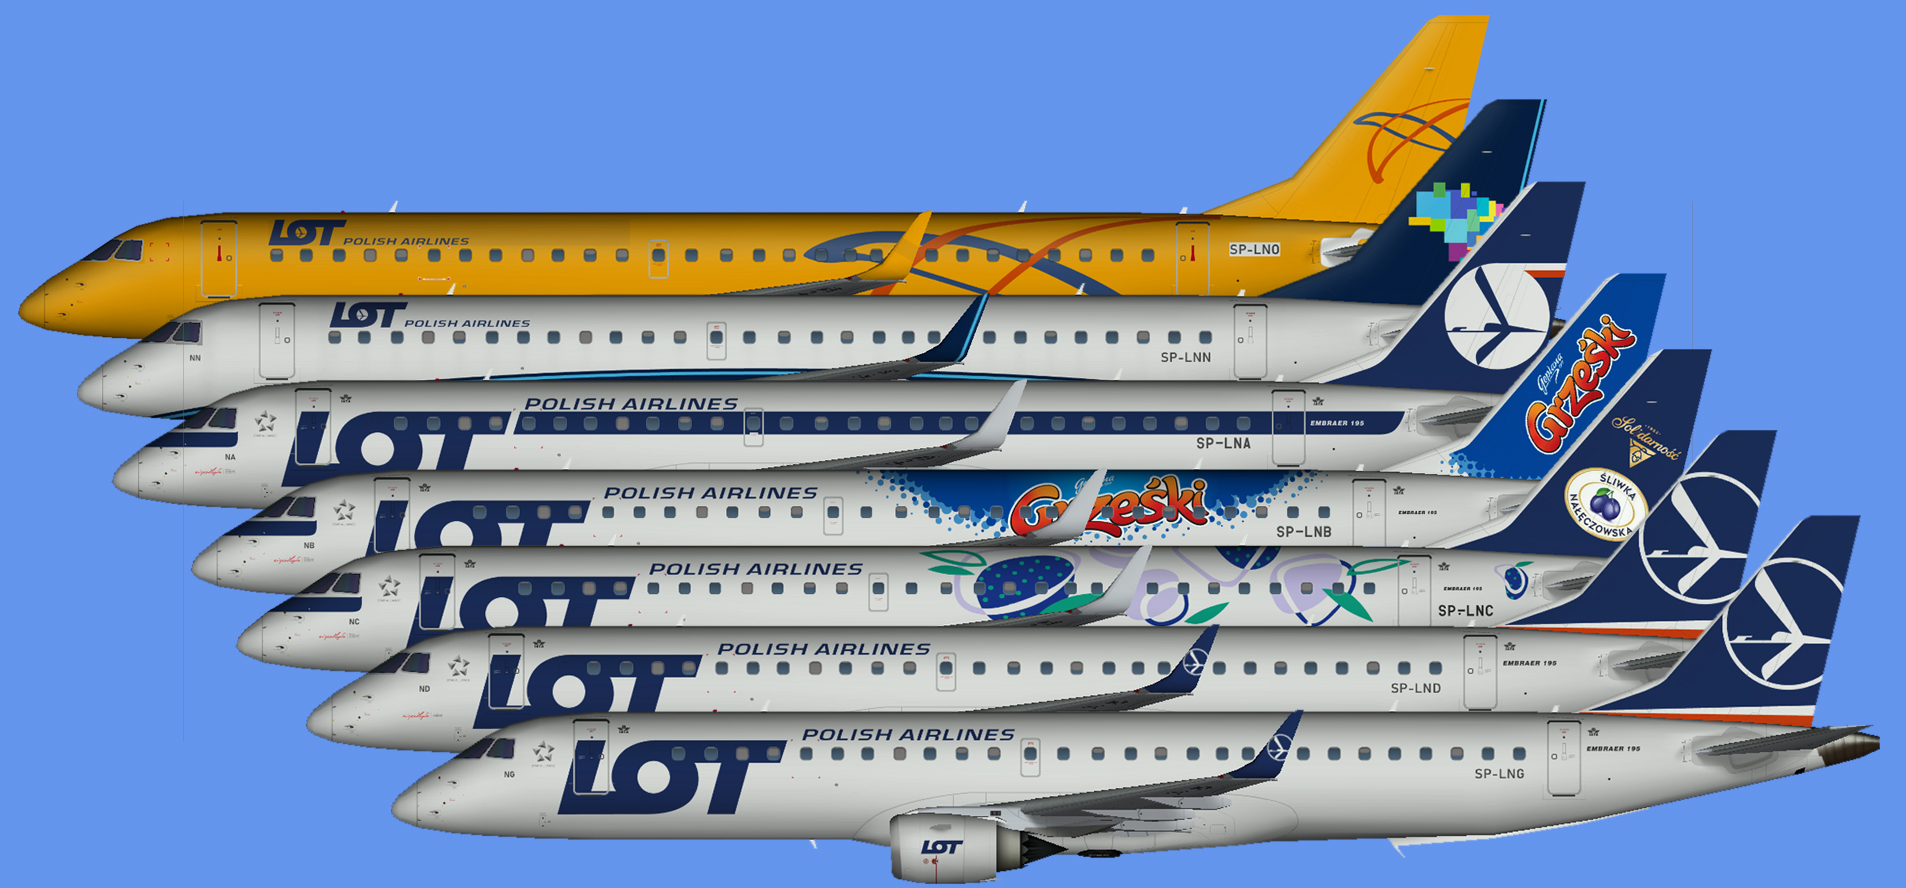 LOT Embraer E195 fleet 2019